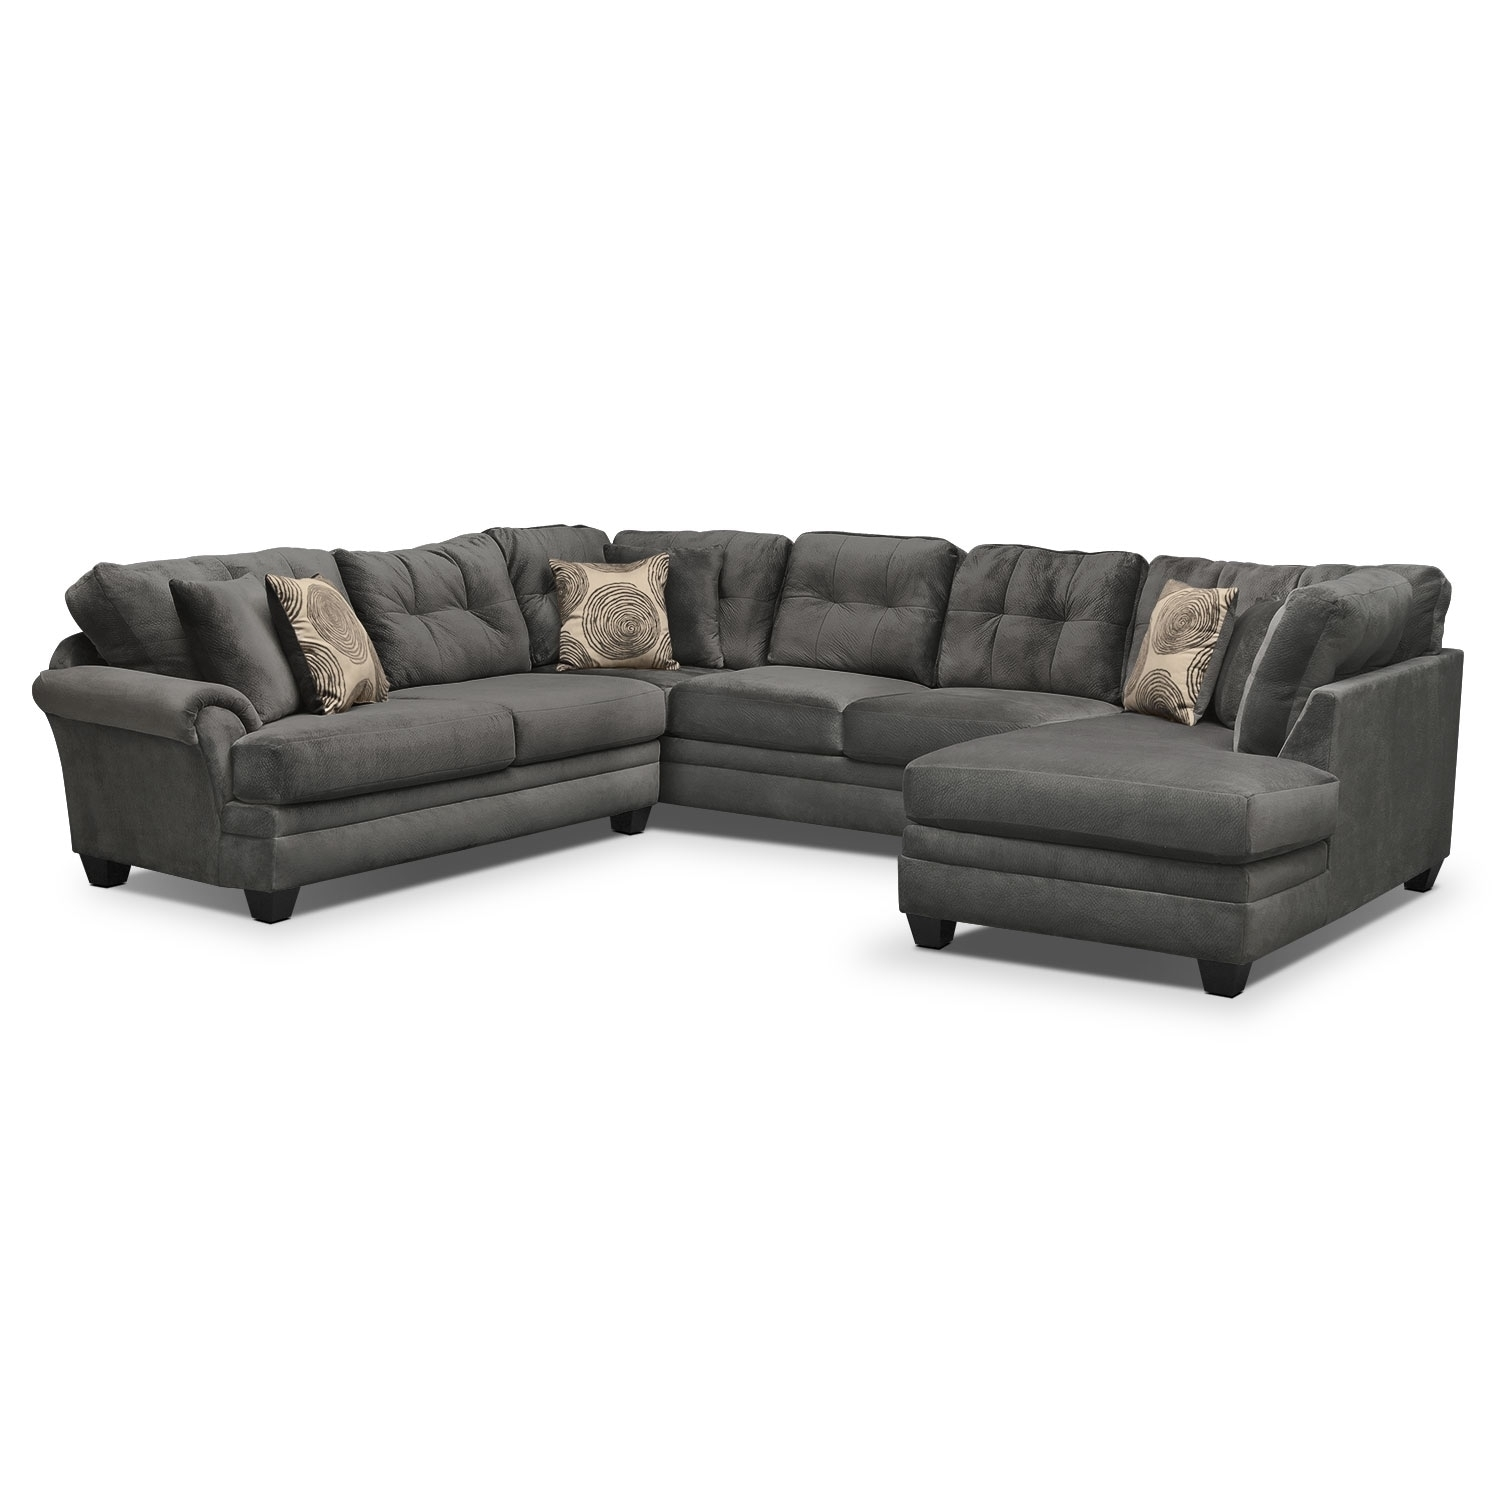 Couches Buffalo Ny | Couch And Sofa Set Intended For Sectional Sofas At Buffalo Ny (View 5 of 10)